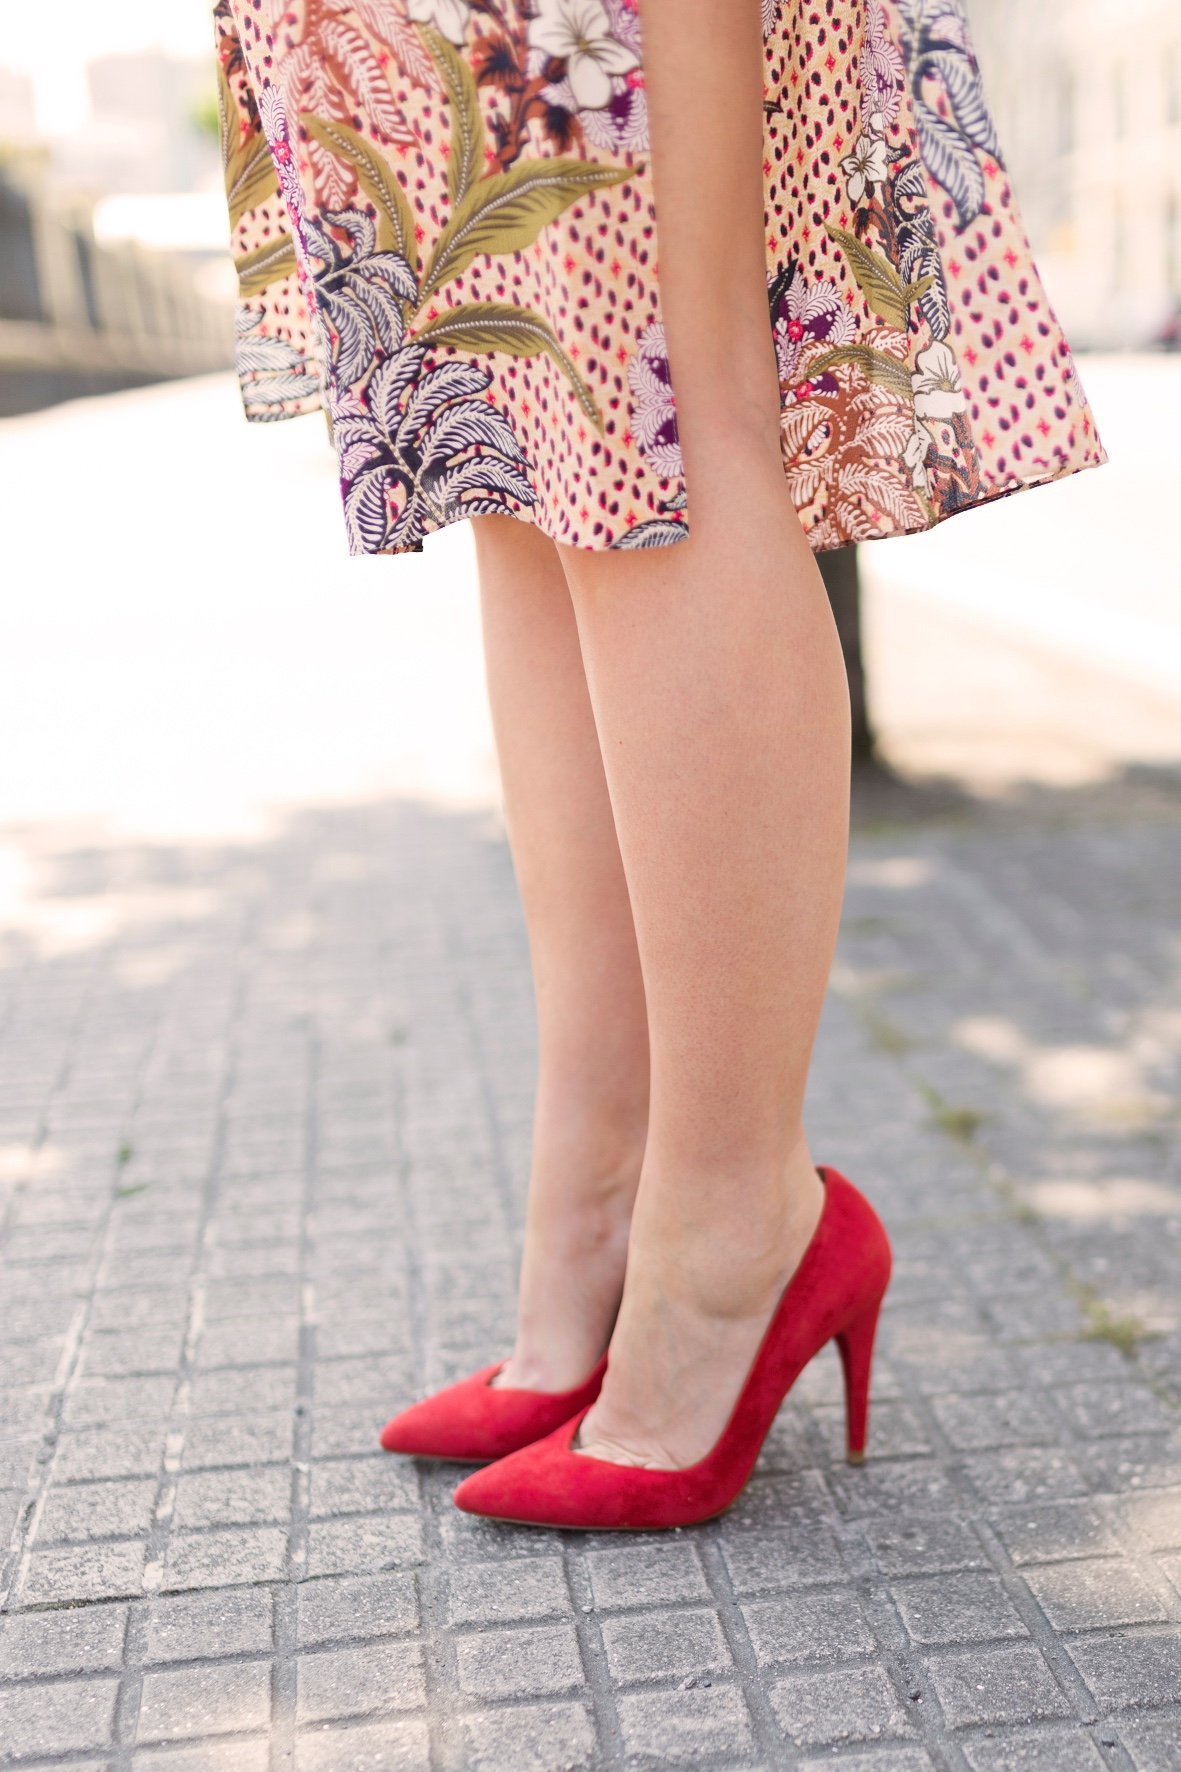 heels-red-tacón rojo· cèline bag · coruña ·cèline -dress · street · trió bag · zara